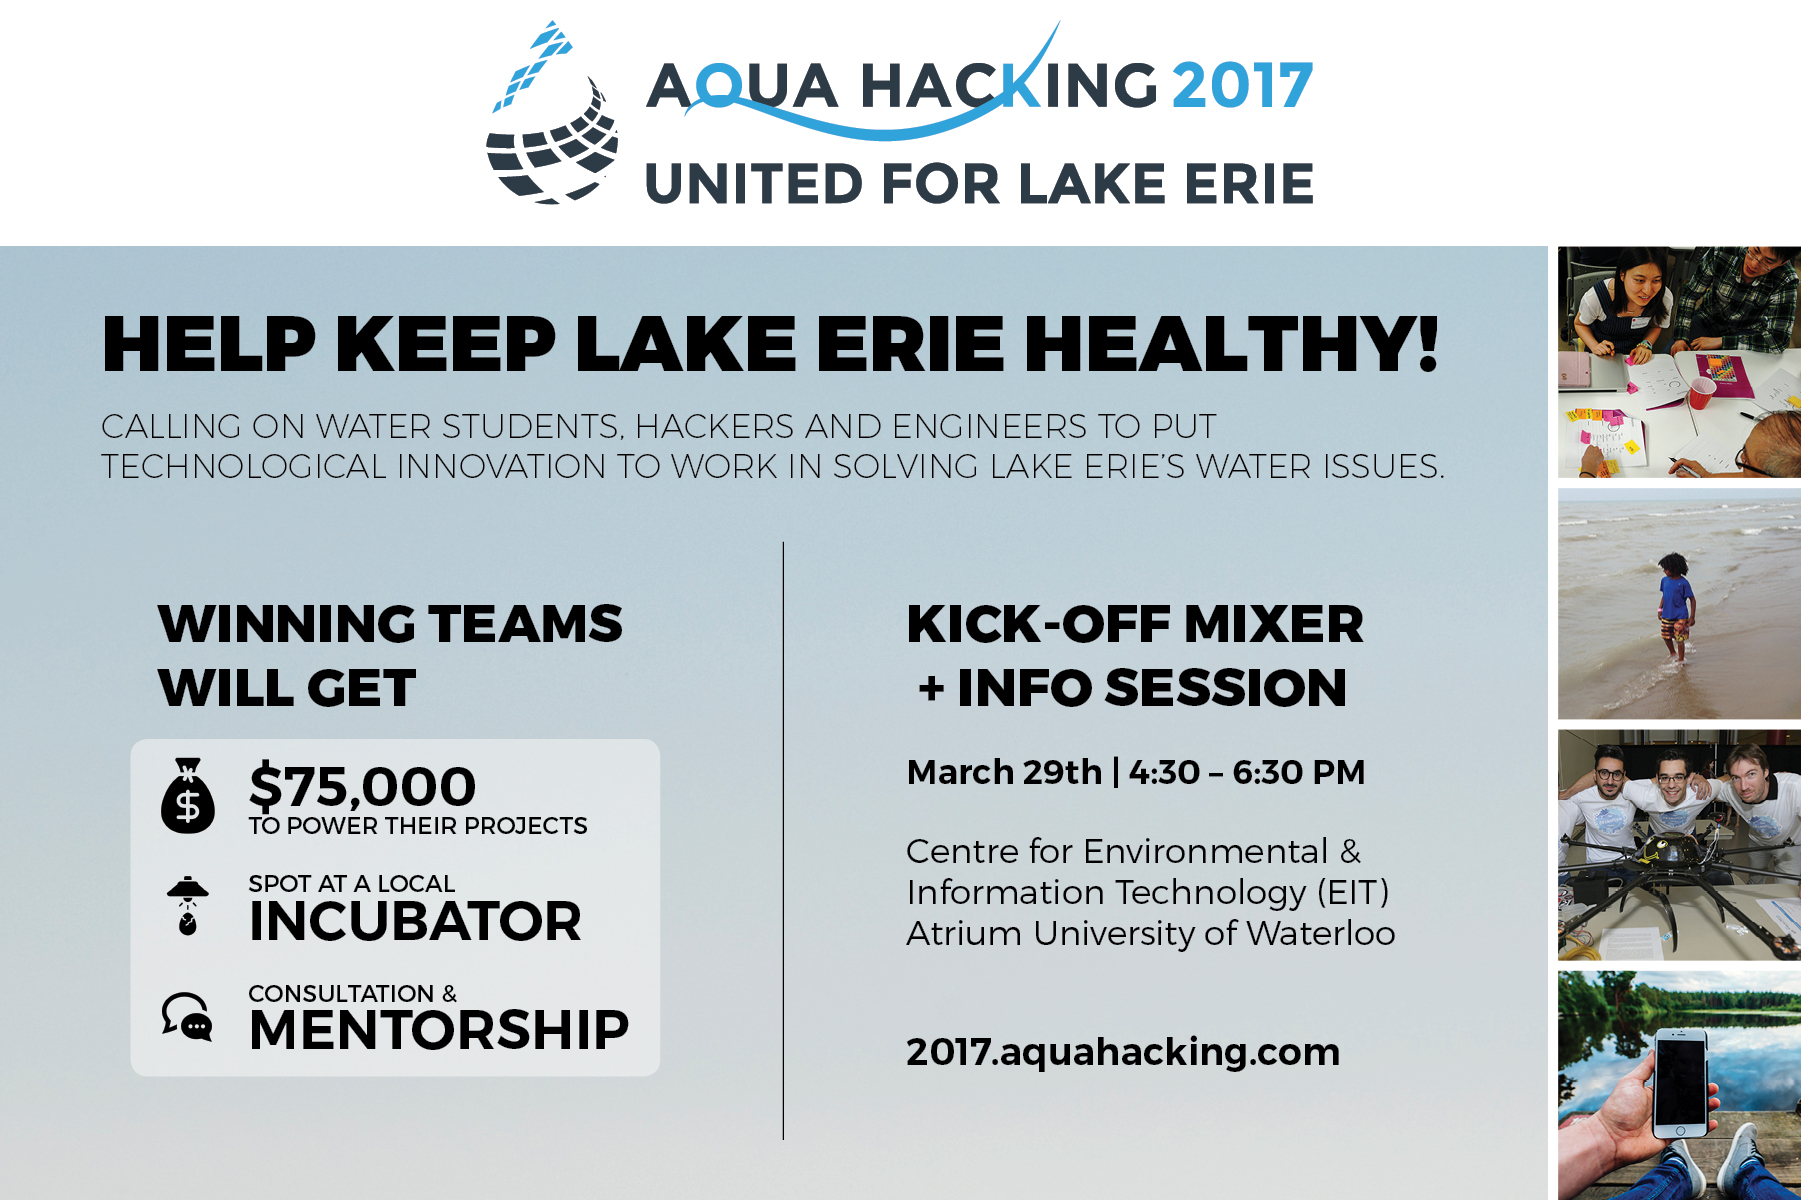 Announcement poster for AquaHacking 2017.